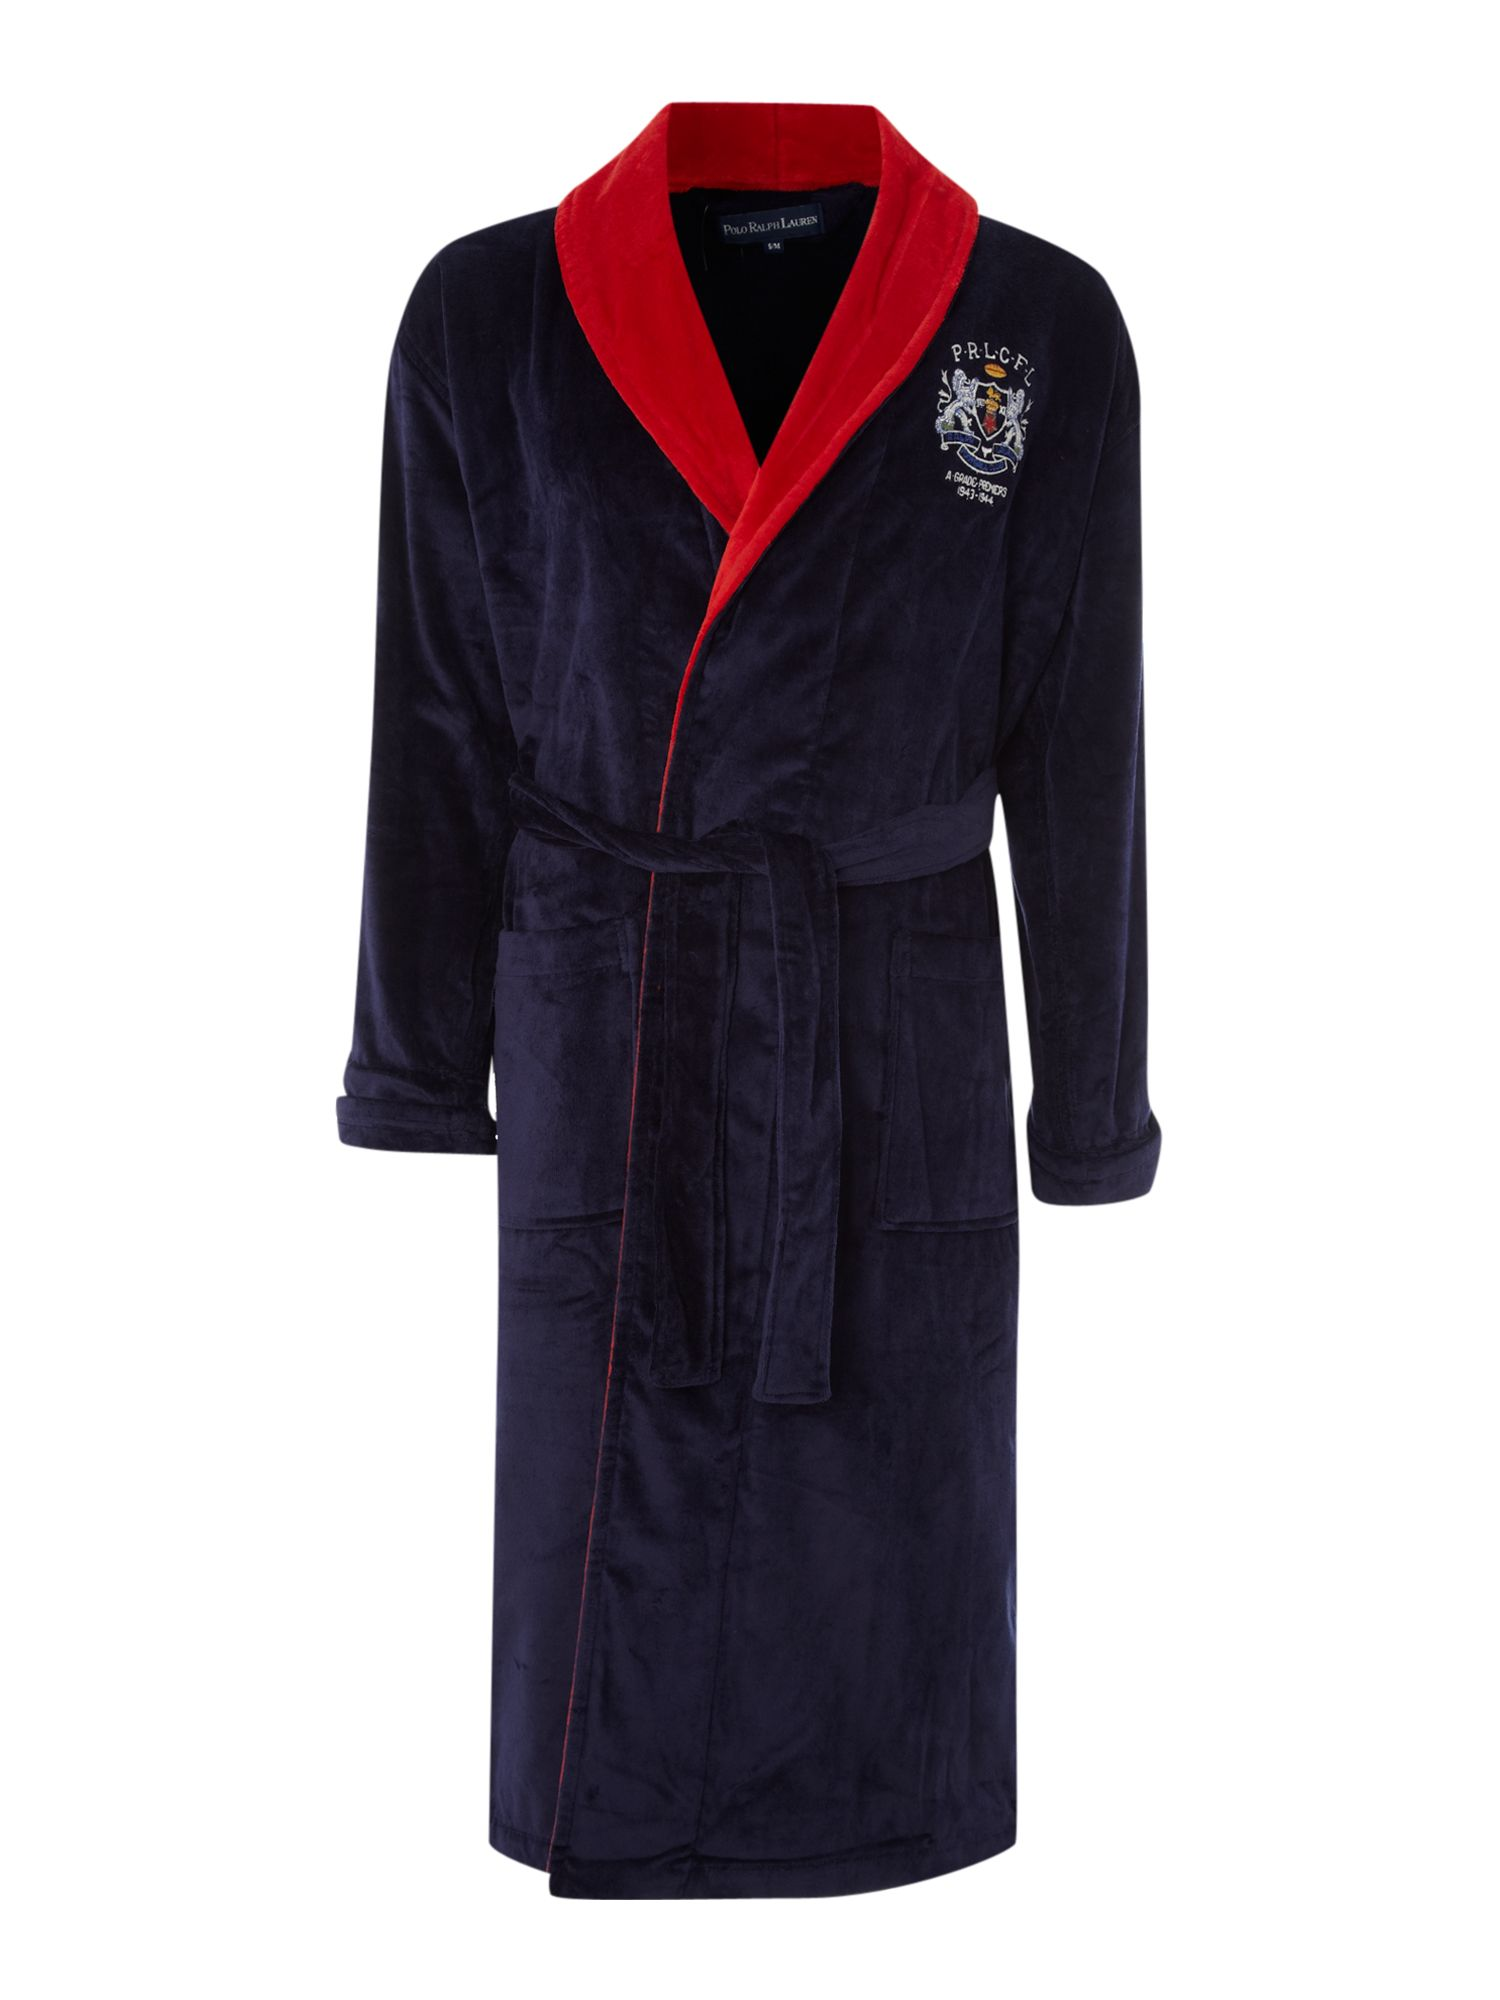 lyst polo ralph lauren contrast collar robe in blue for men. Black Bedroom Furniture Sets. Home Design Ideas